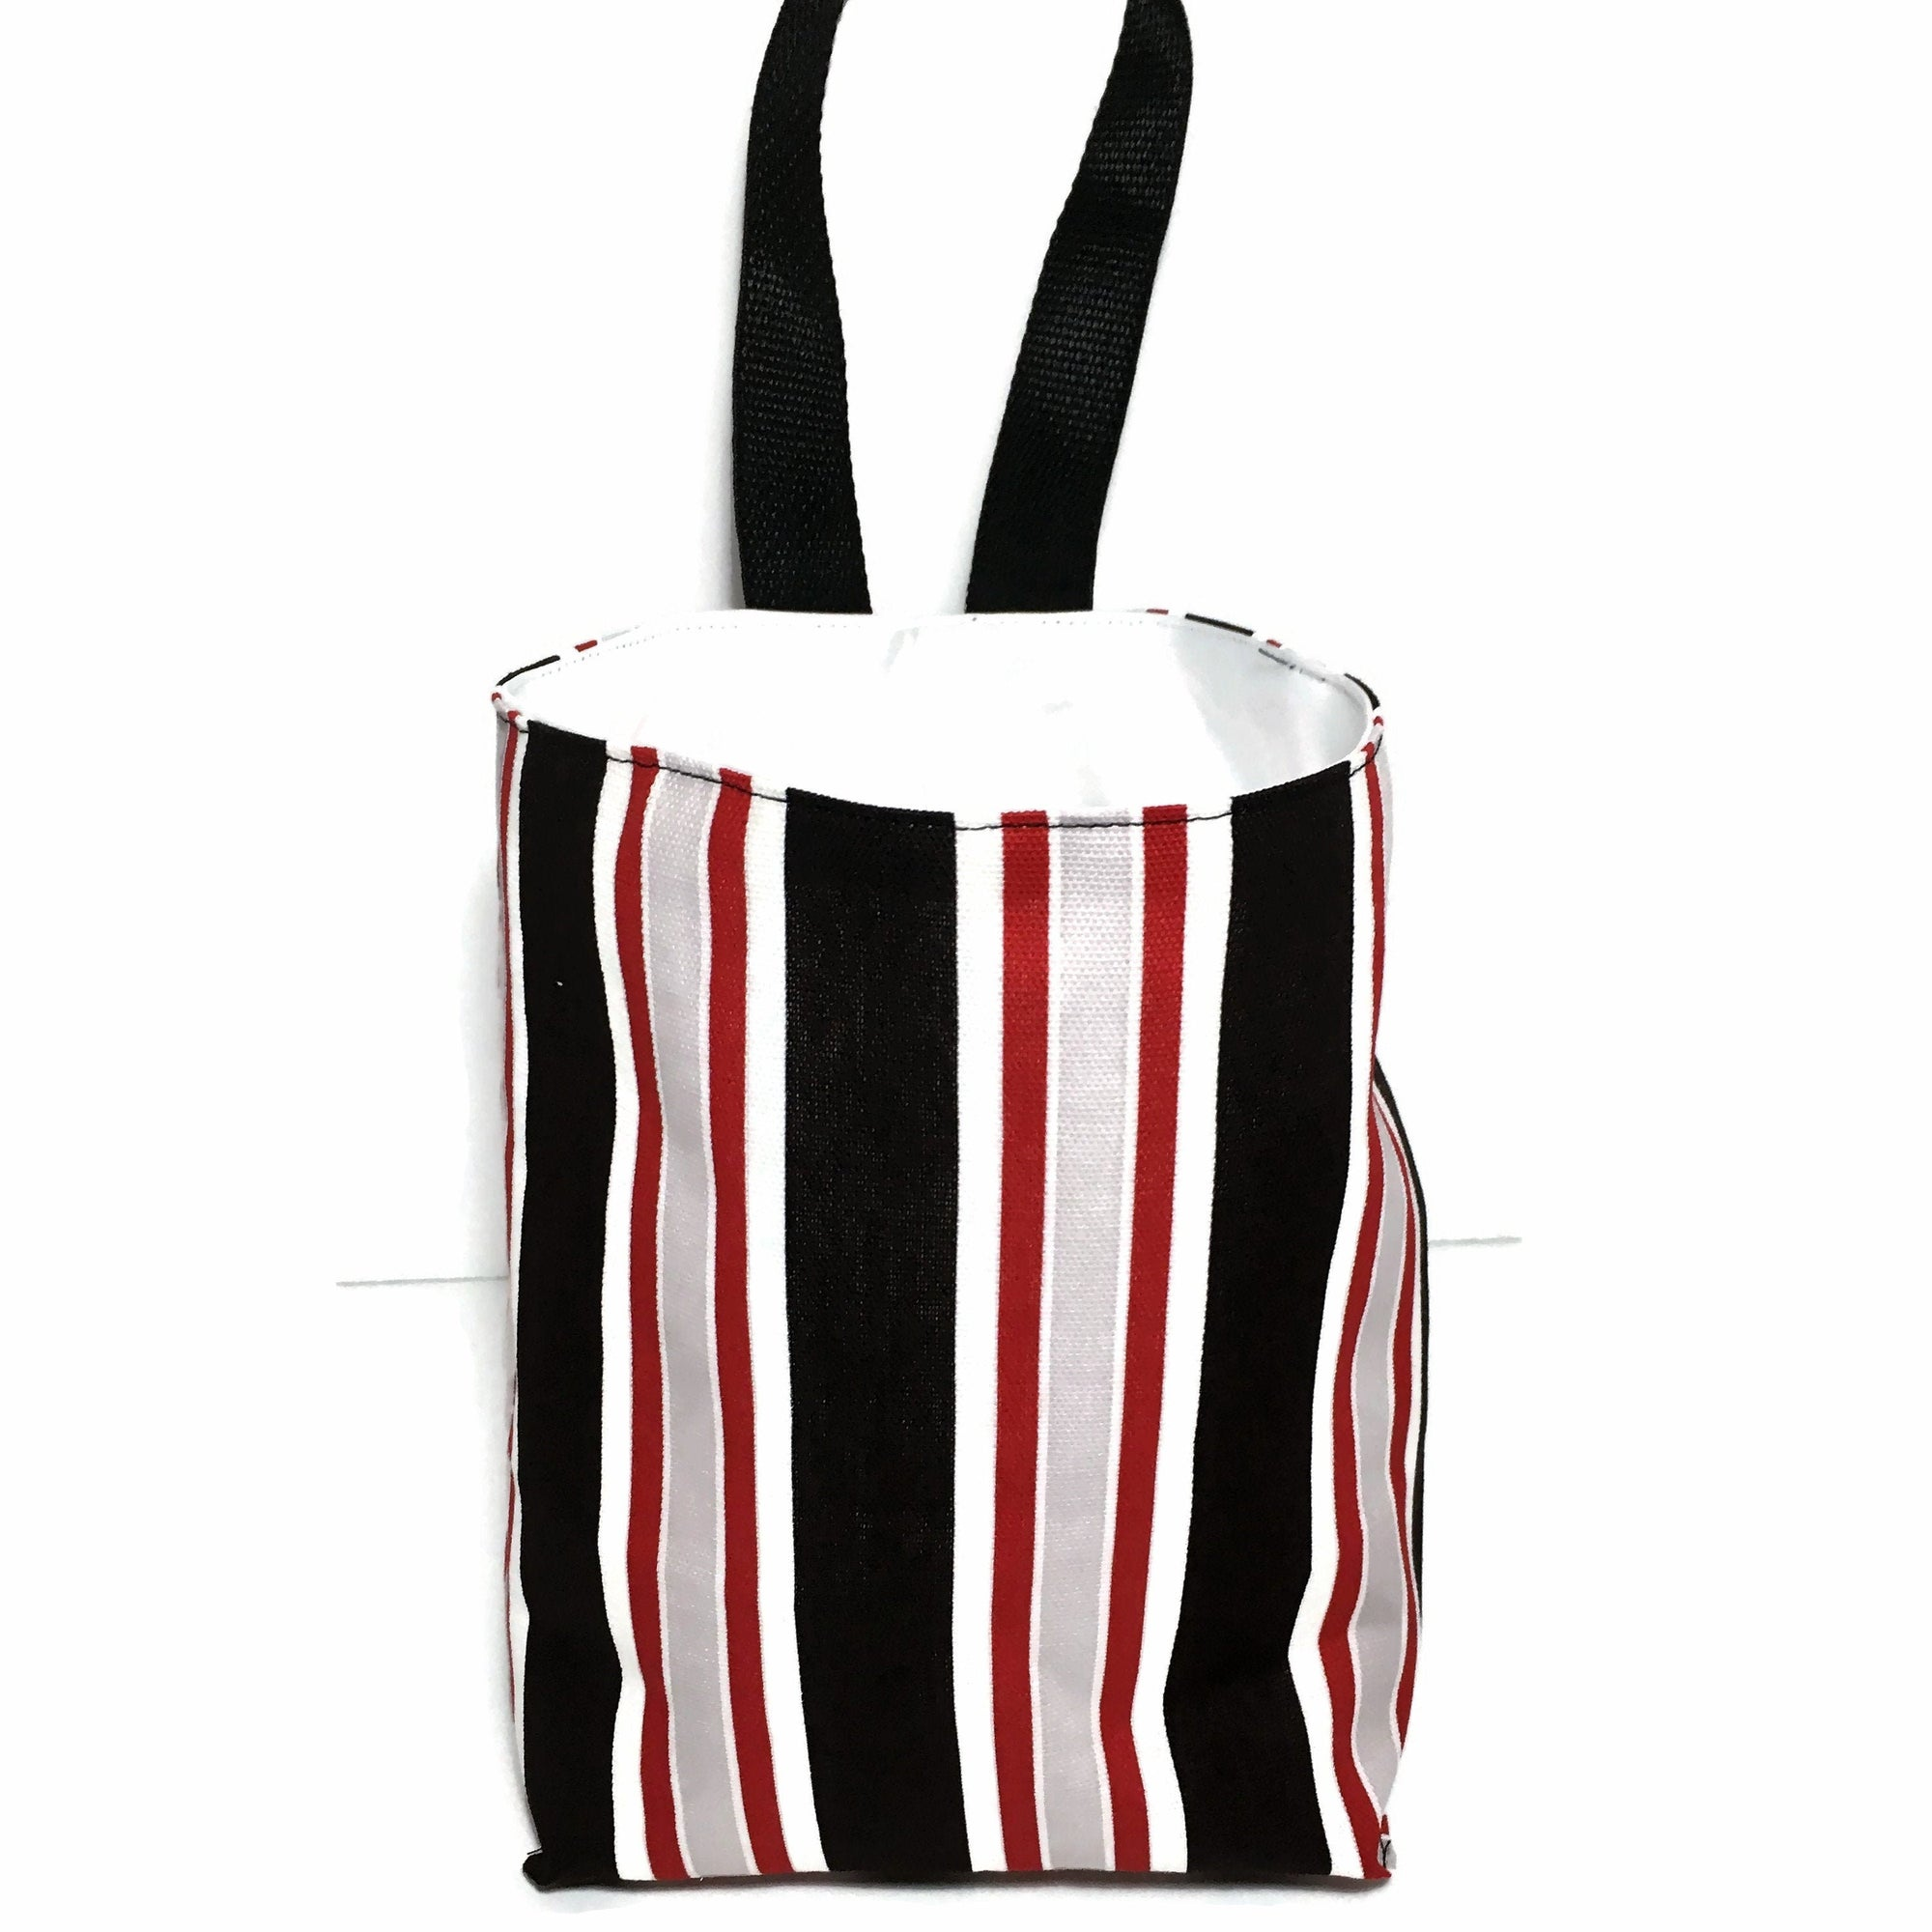 Stripe Car Trash Bag - Car Accessory - Lined for Quick Clean Up - Soft Bag